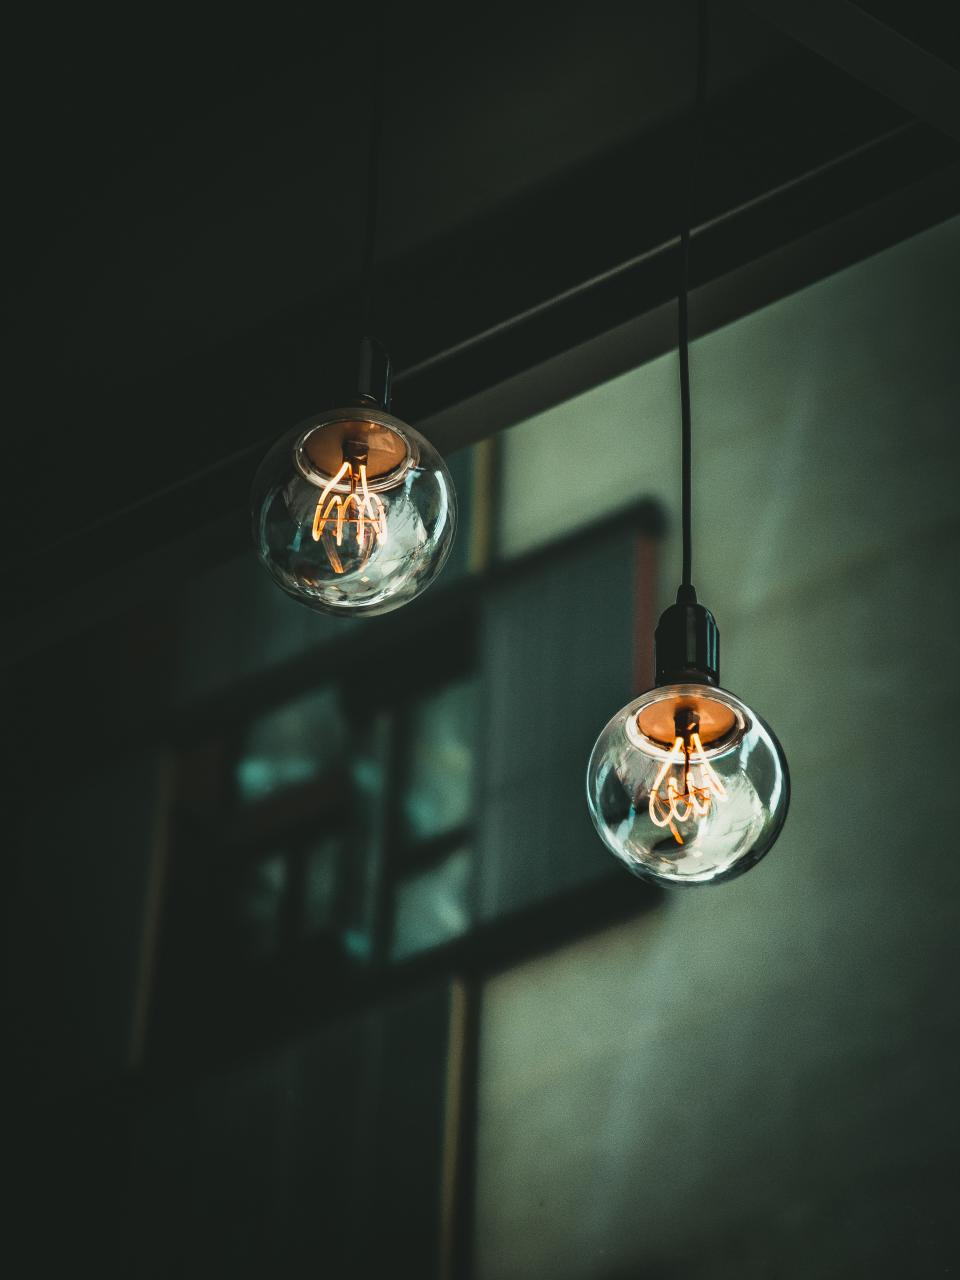 light bulb spark glass circle round bokeh blur window wall ceiling